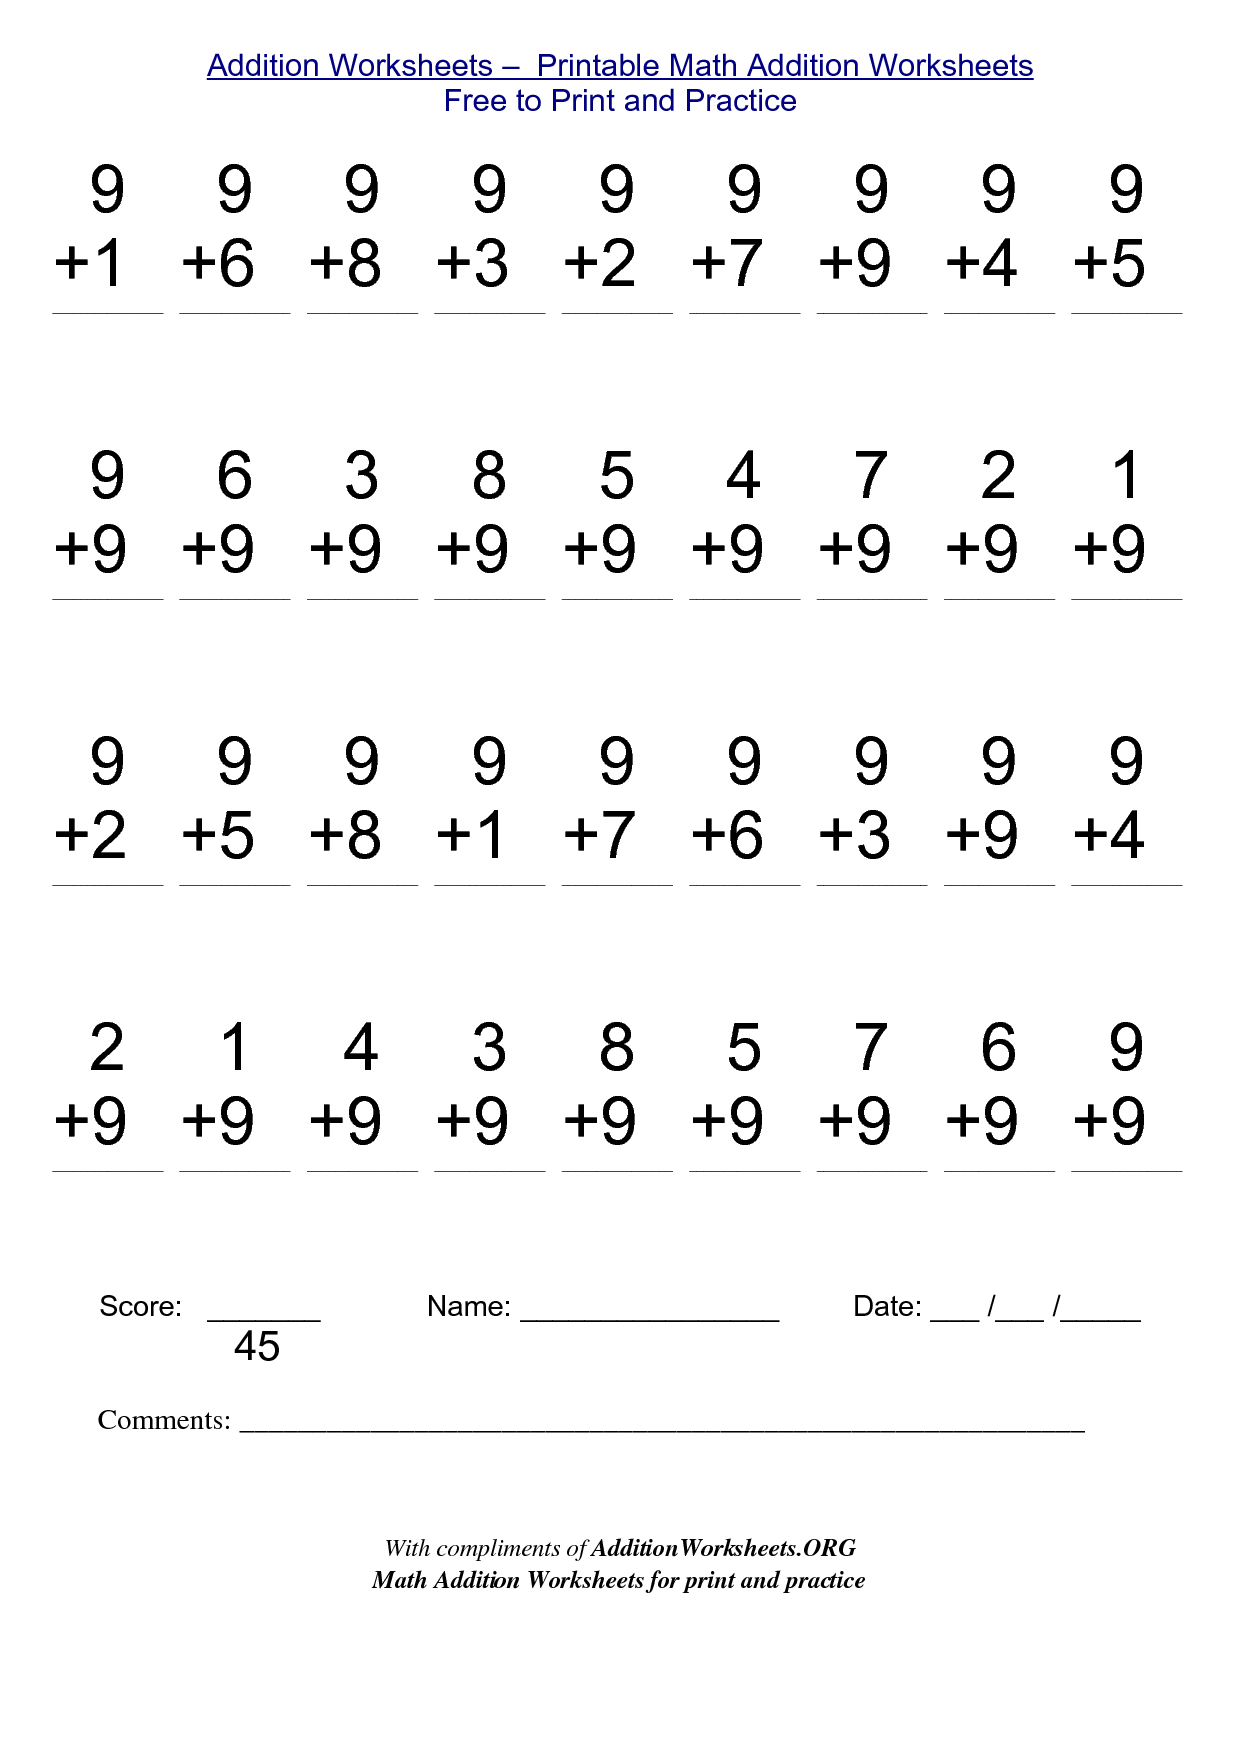 Worksheets Math Worksheets Printables singapore math kindergarten worksheets first grade addition printable free to print